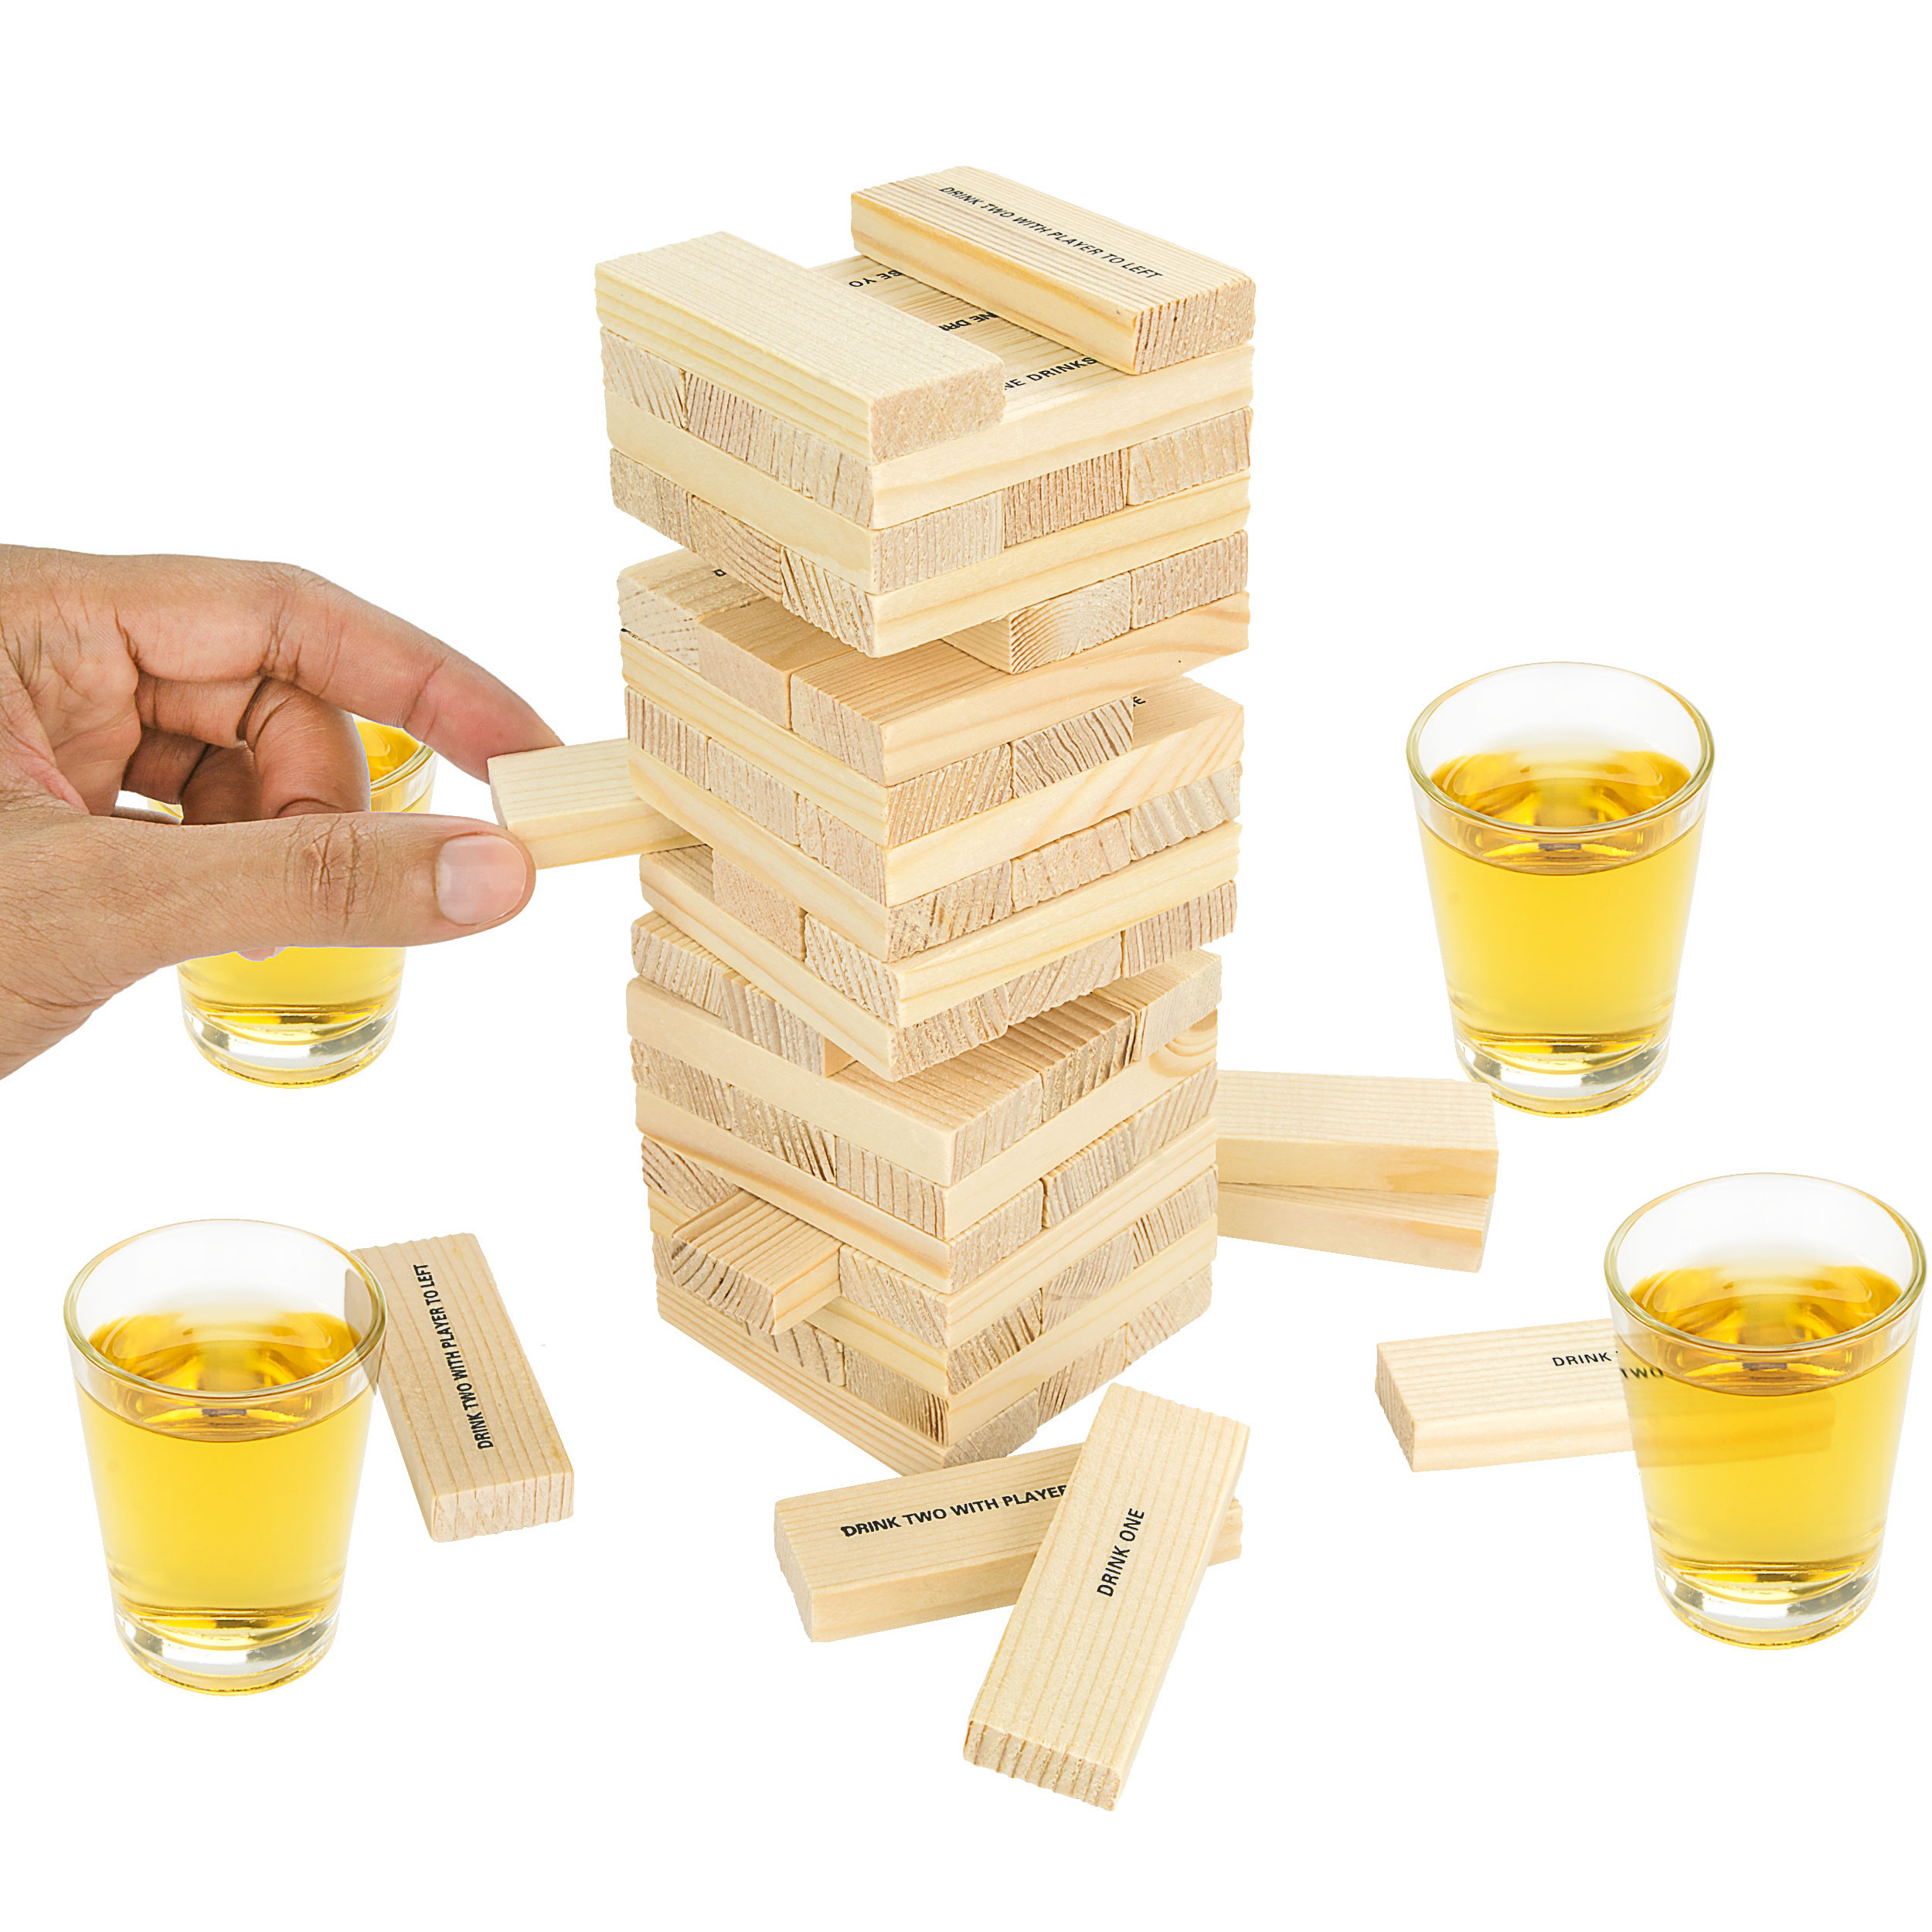 Dunken Blocks Shot Glass Drinking Game, A Tower Of Fun!